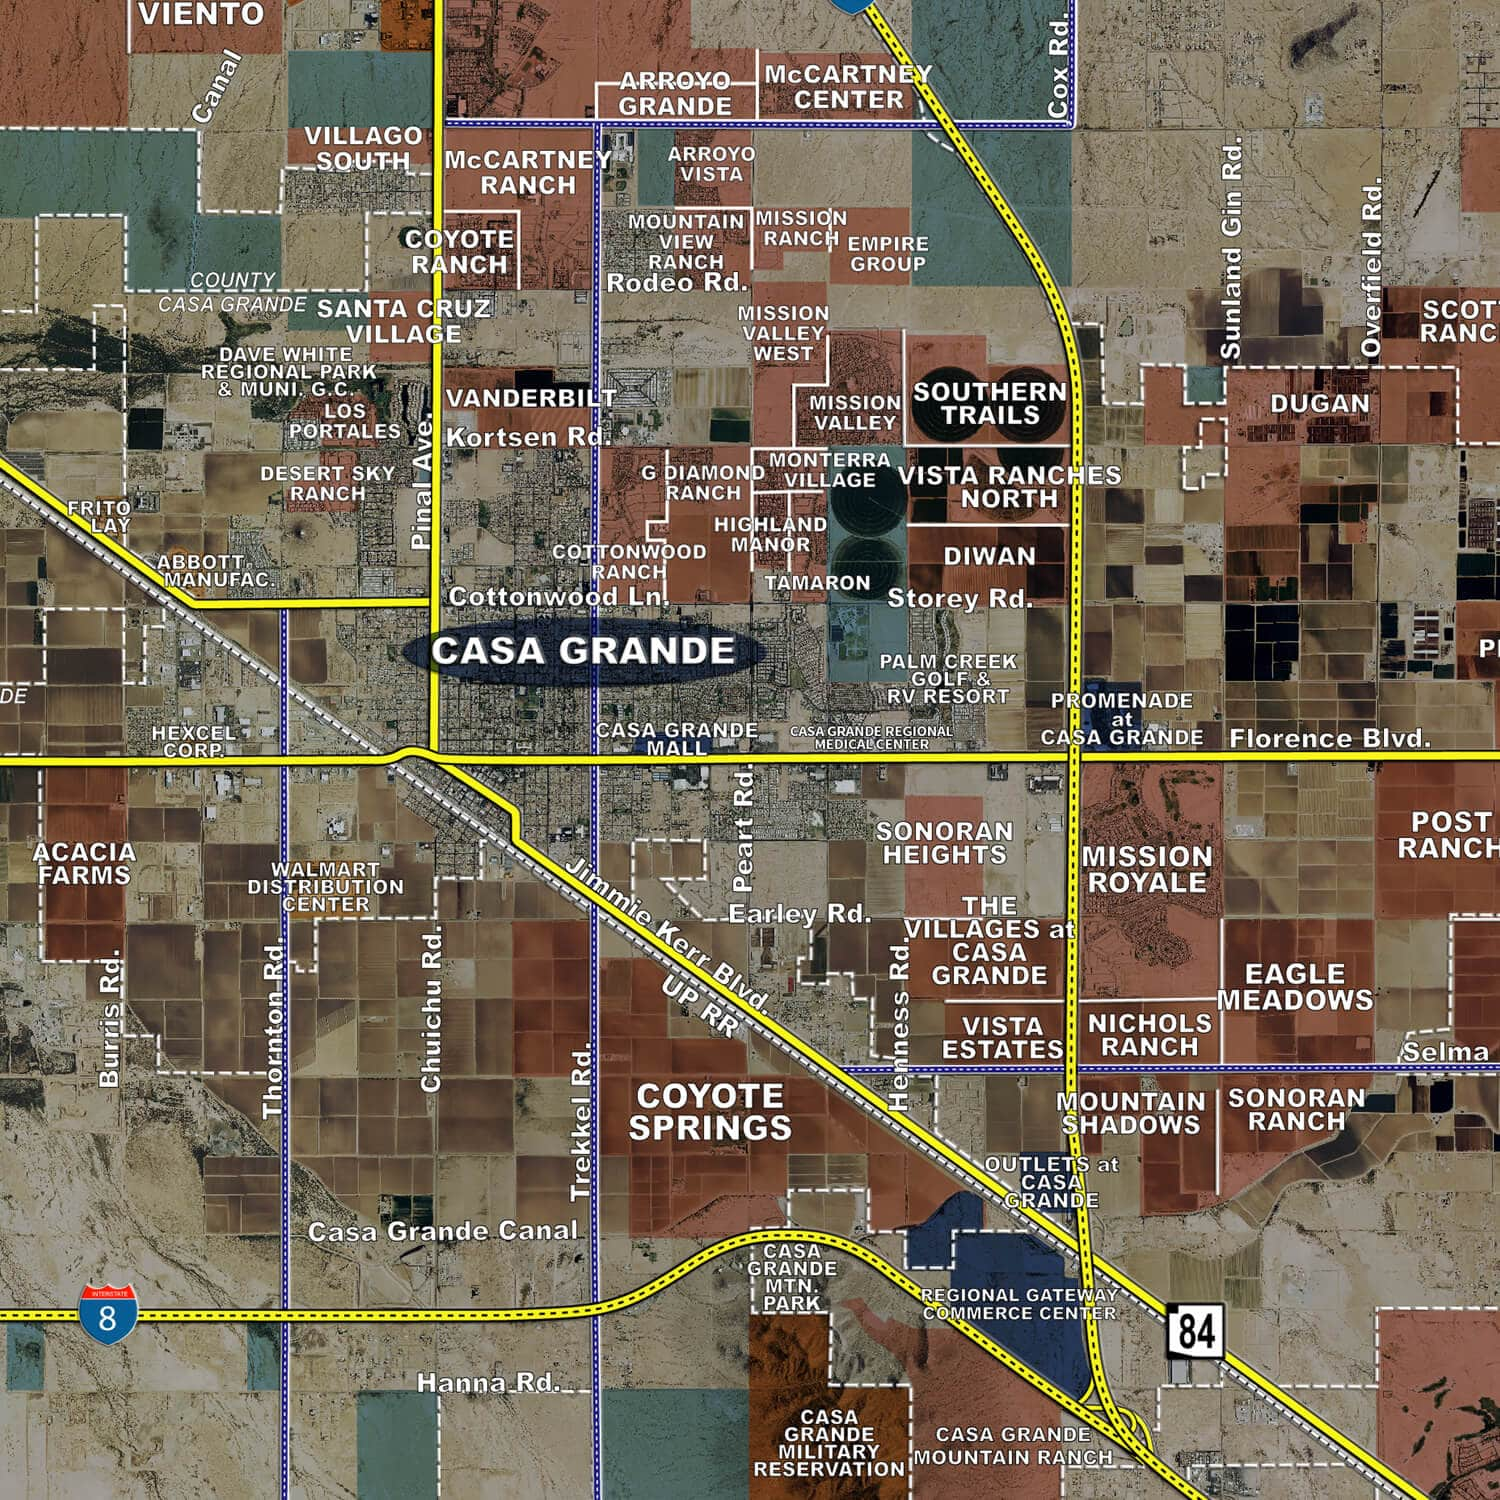 pinal county aerial wall mural landiscor real estate mapping 2014 pinal county wall map mural standard print scale 96 x81